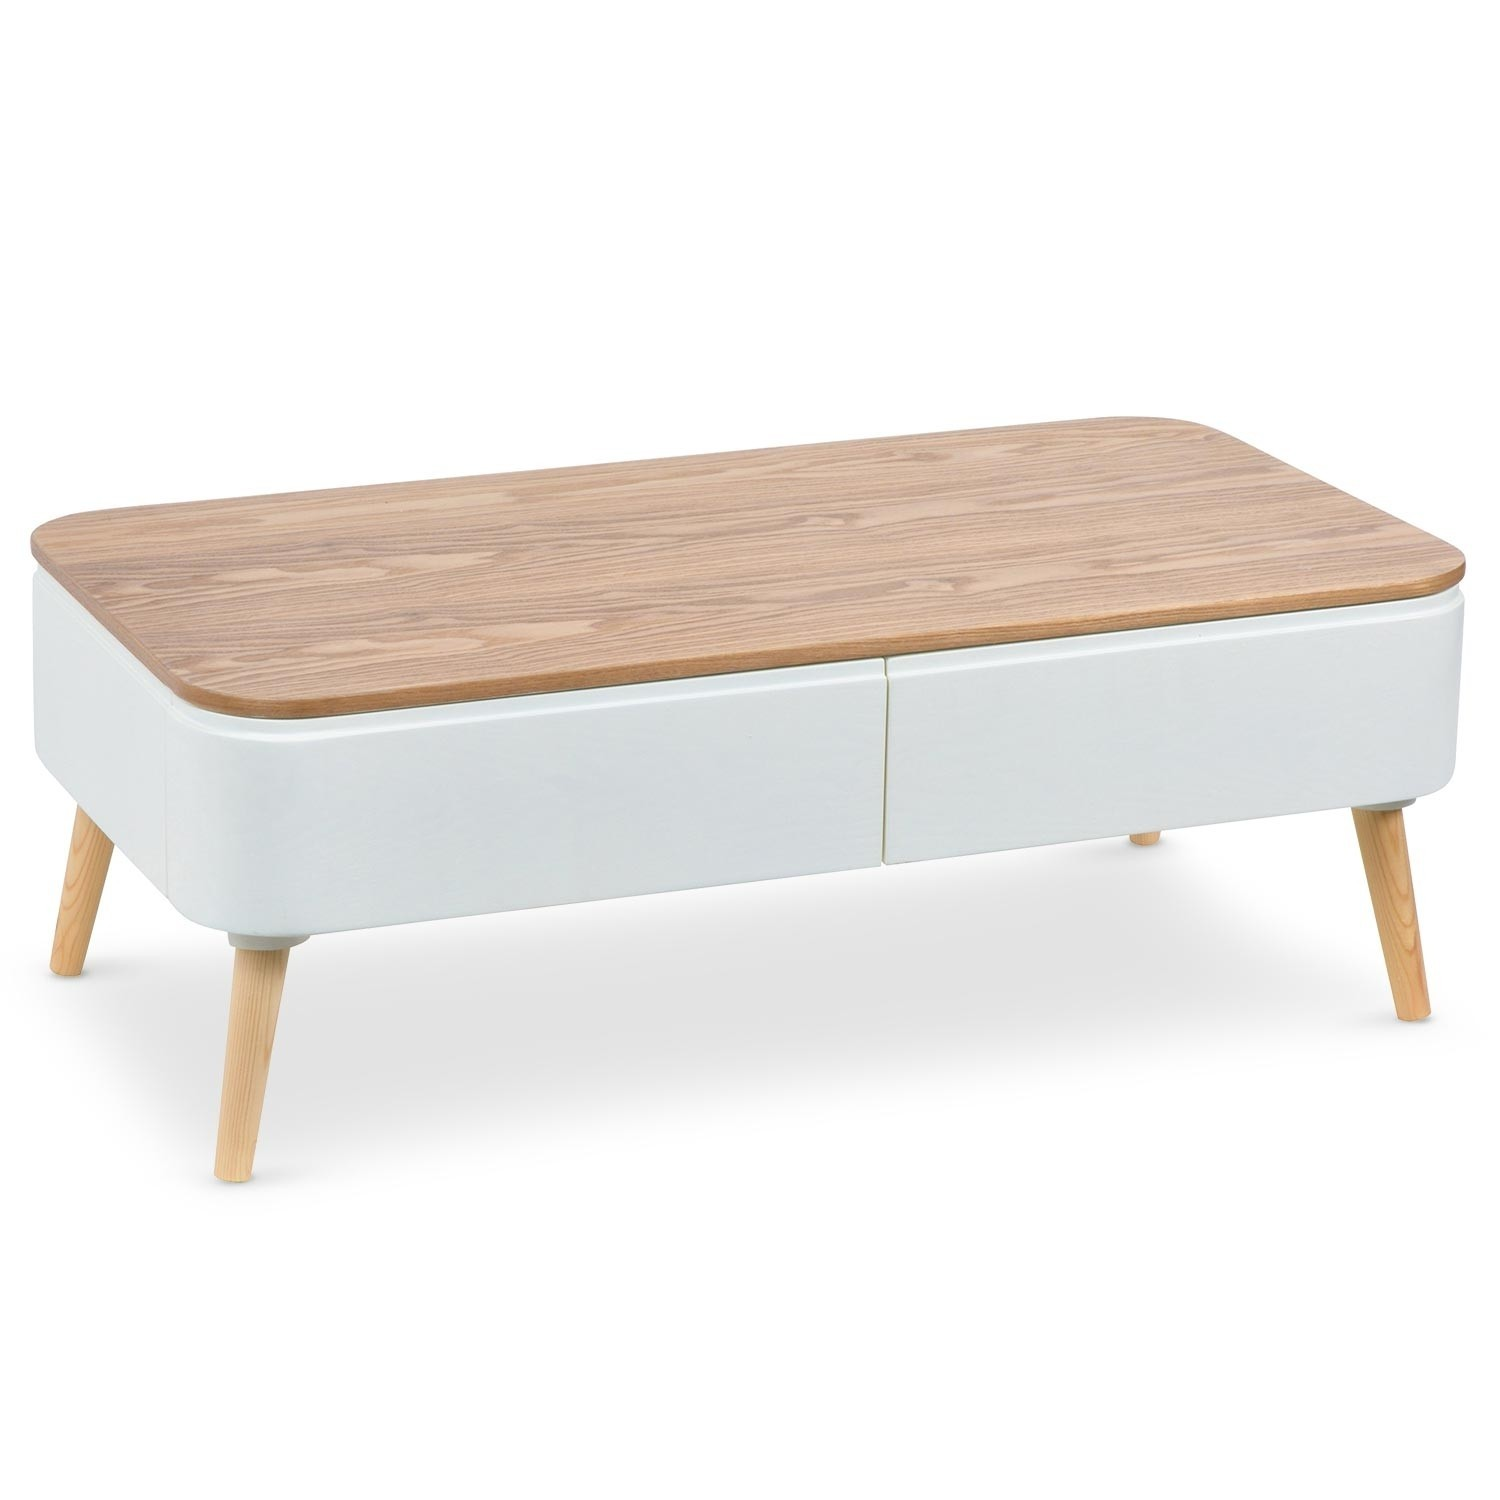 Table basse naturel et blanc skondu - Table basse bois et blanc ...